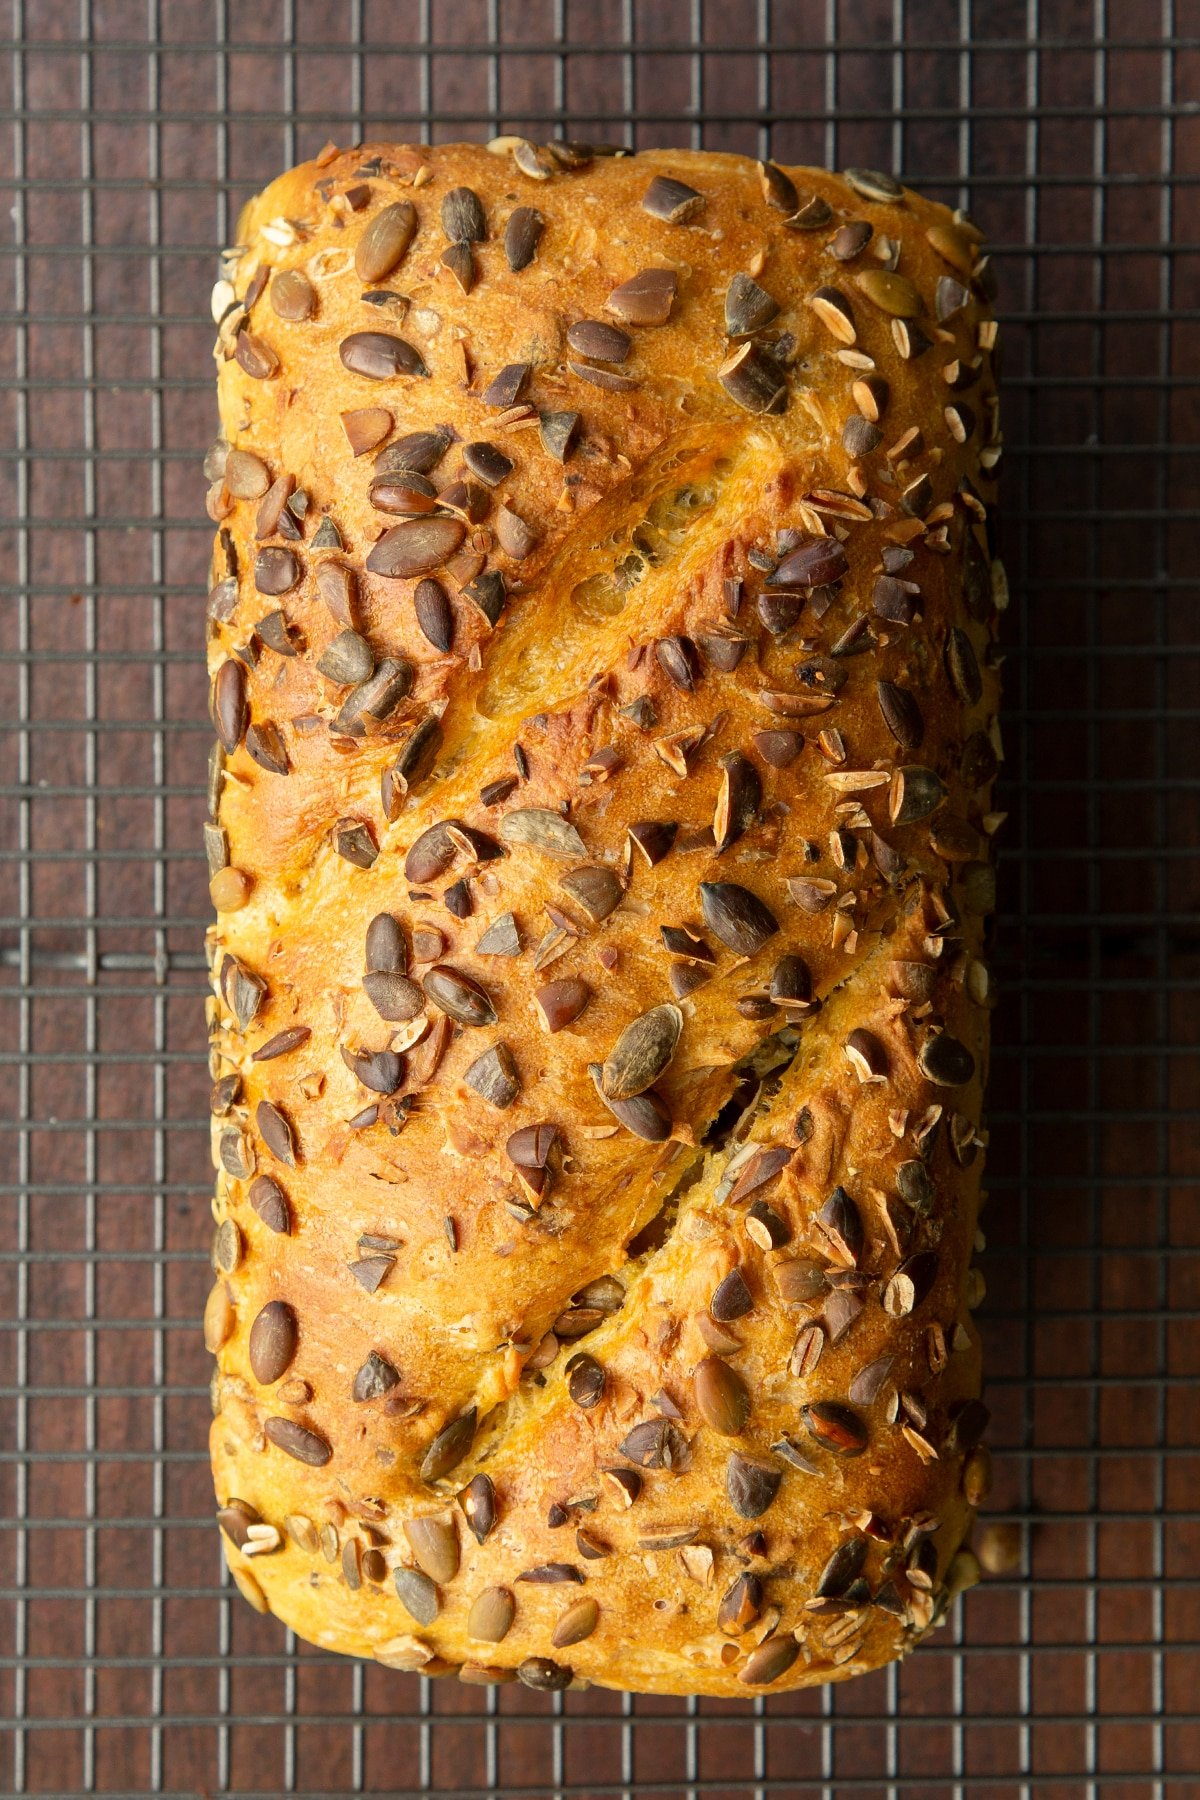 Freshly baked pumpkin seed bread on a wire cooling rack.